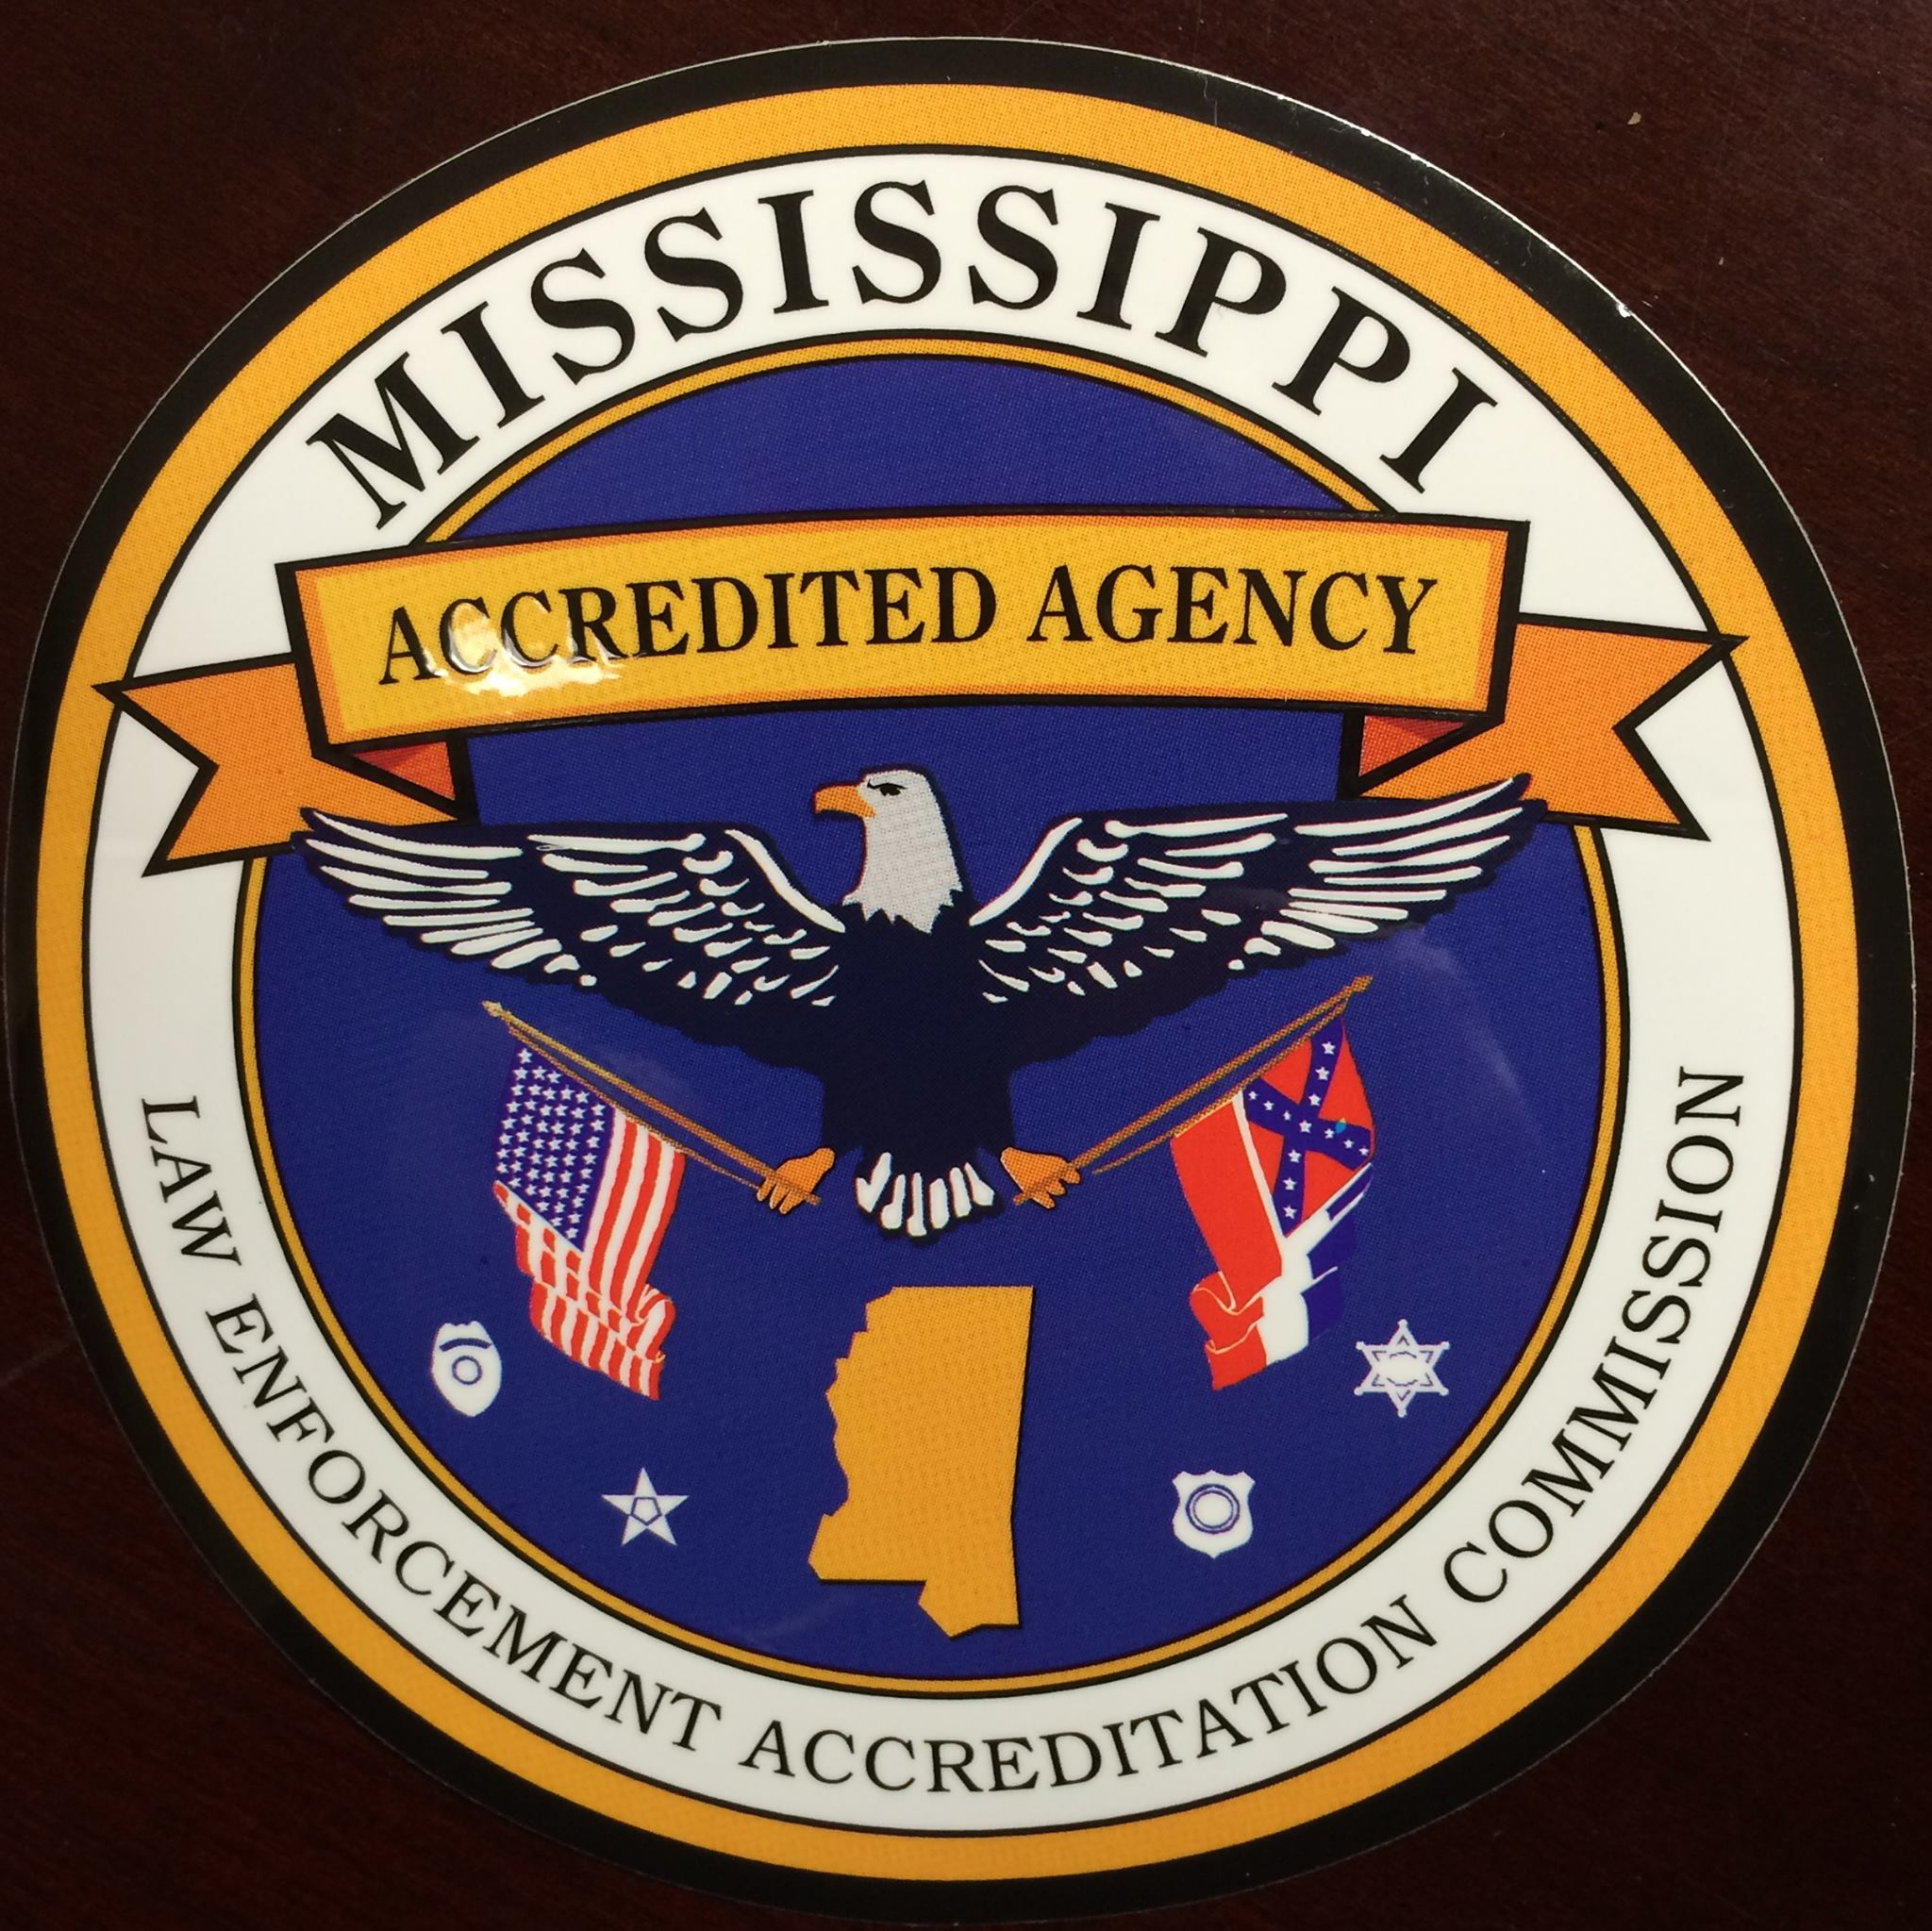 On February 18, 2015, BPD received its accreditation from the MLEAC.